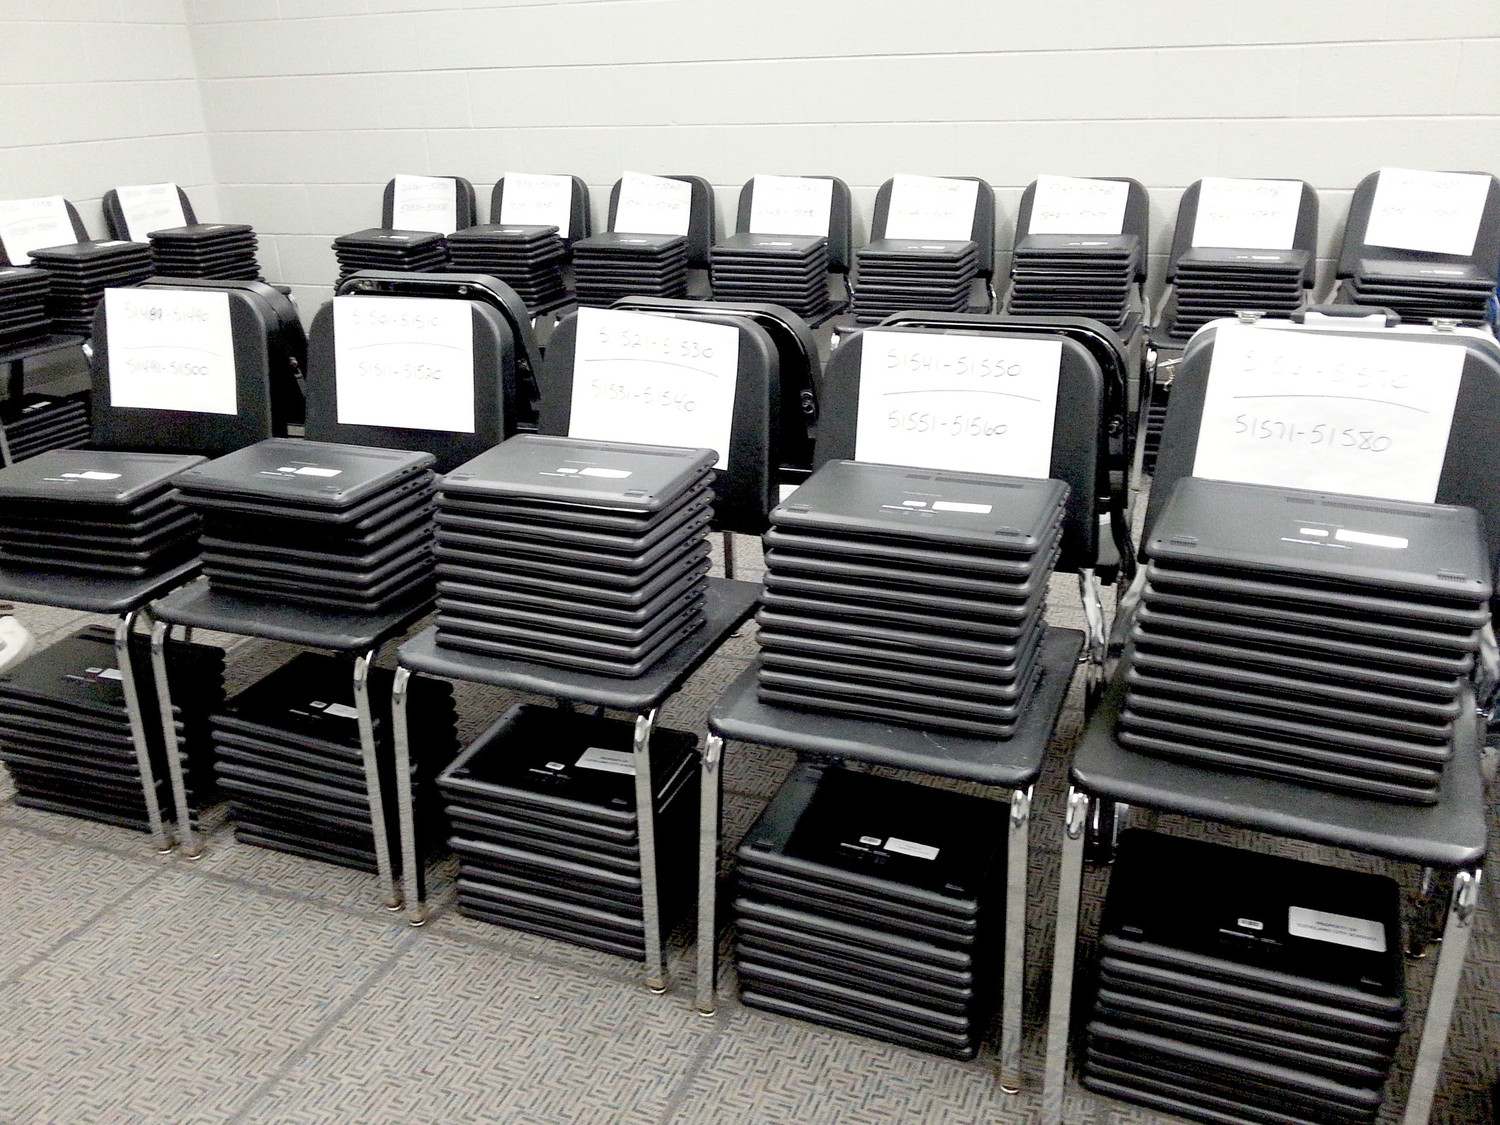 STACKS AND STACKS of Google Chromebook laptops wait to be picked up by Cleveland Middle School students. Each of the school's close to 1,400 students received one.